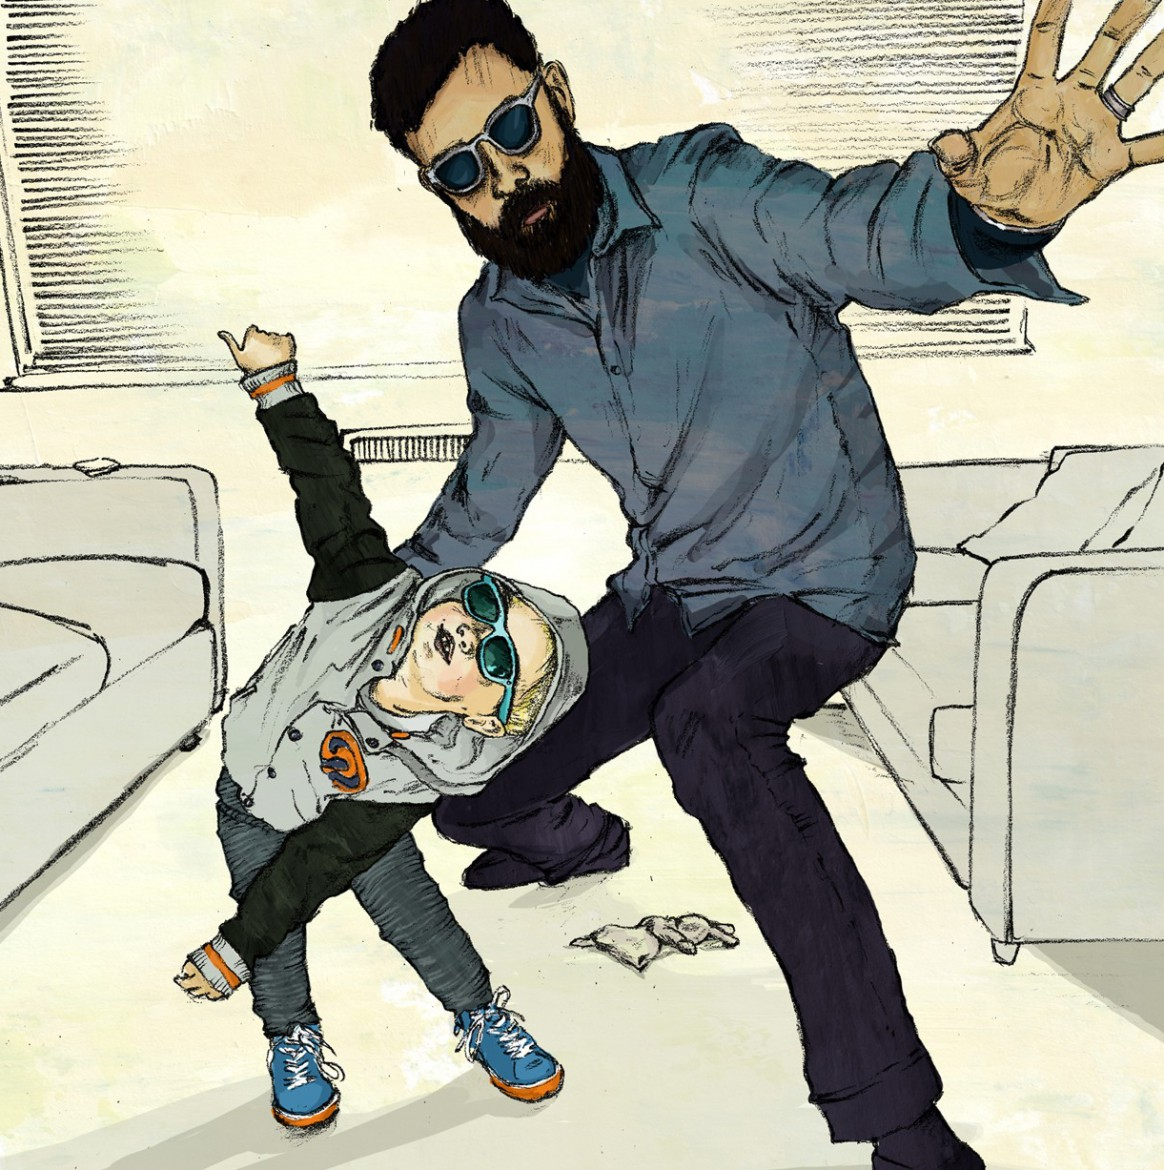 Illustration of father and son in shades acting cool together